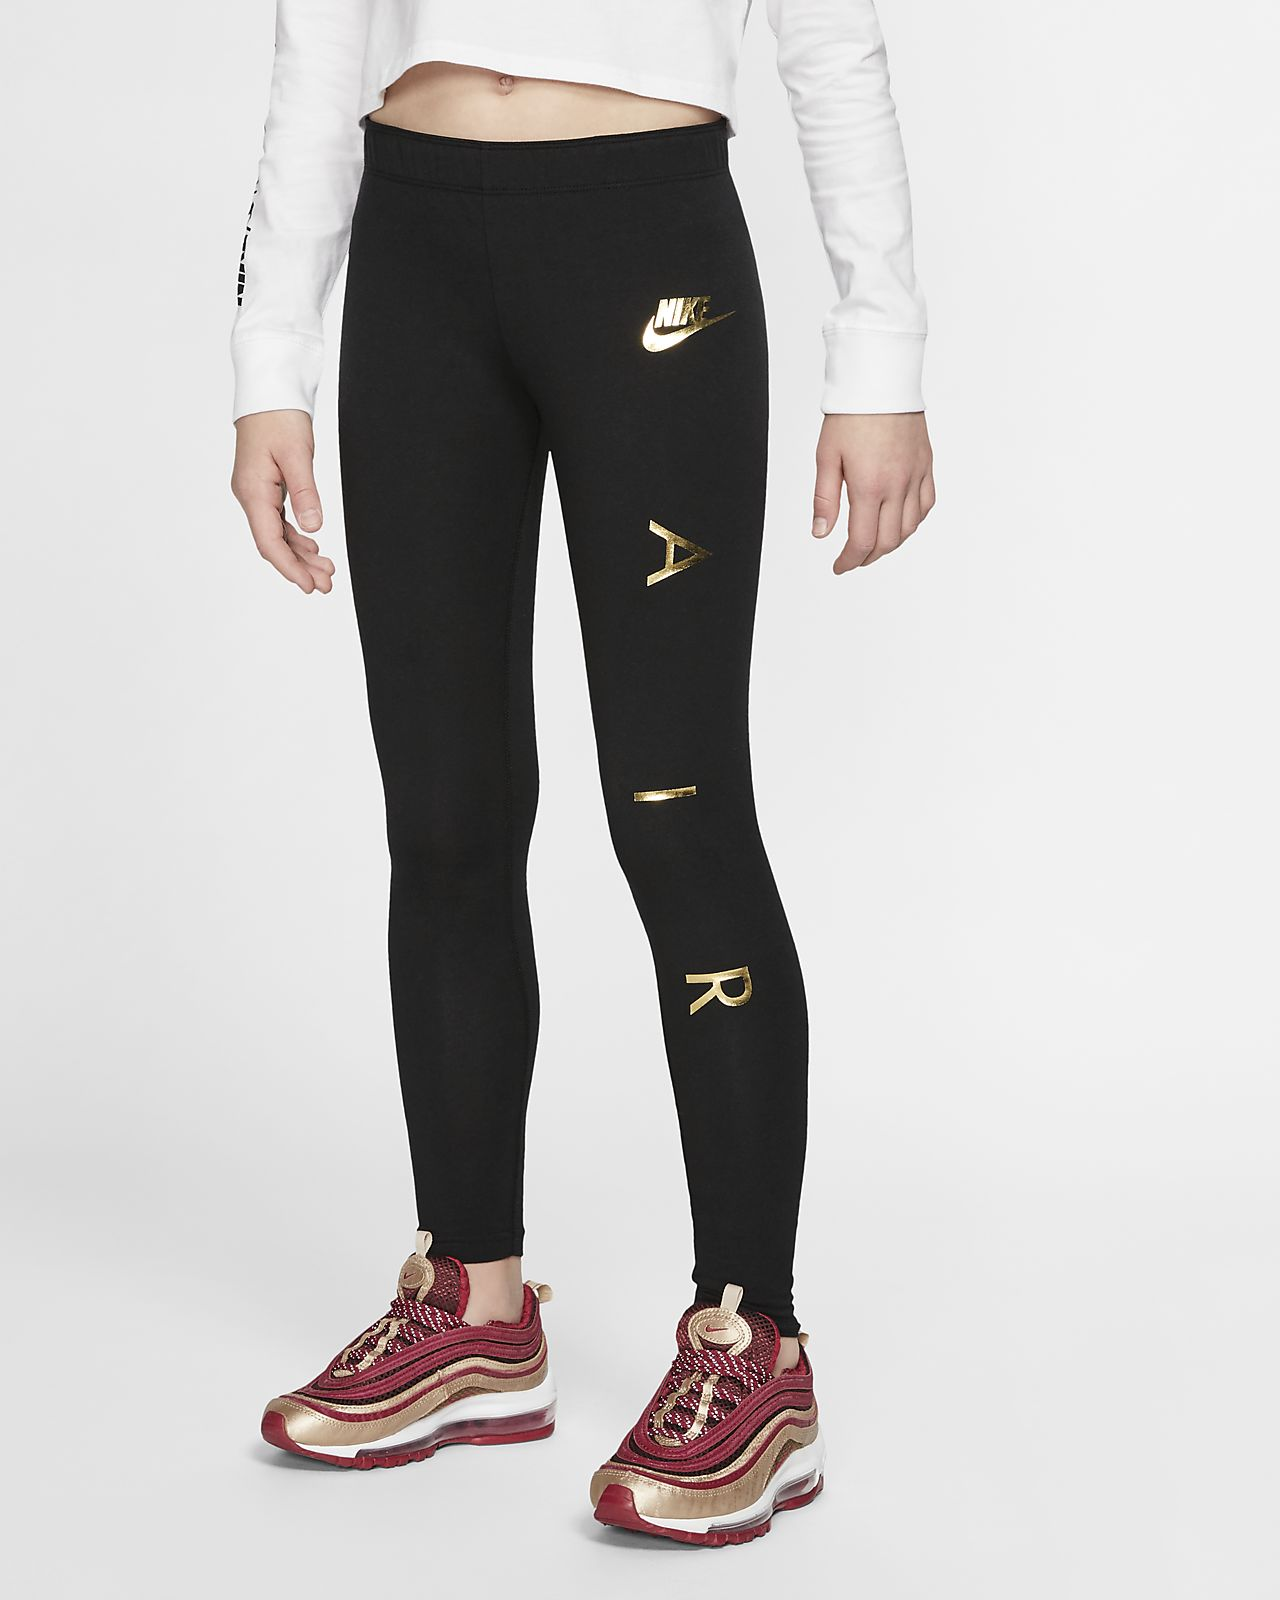 Nike Air Girls' Leggings